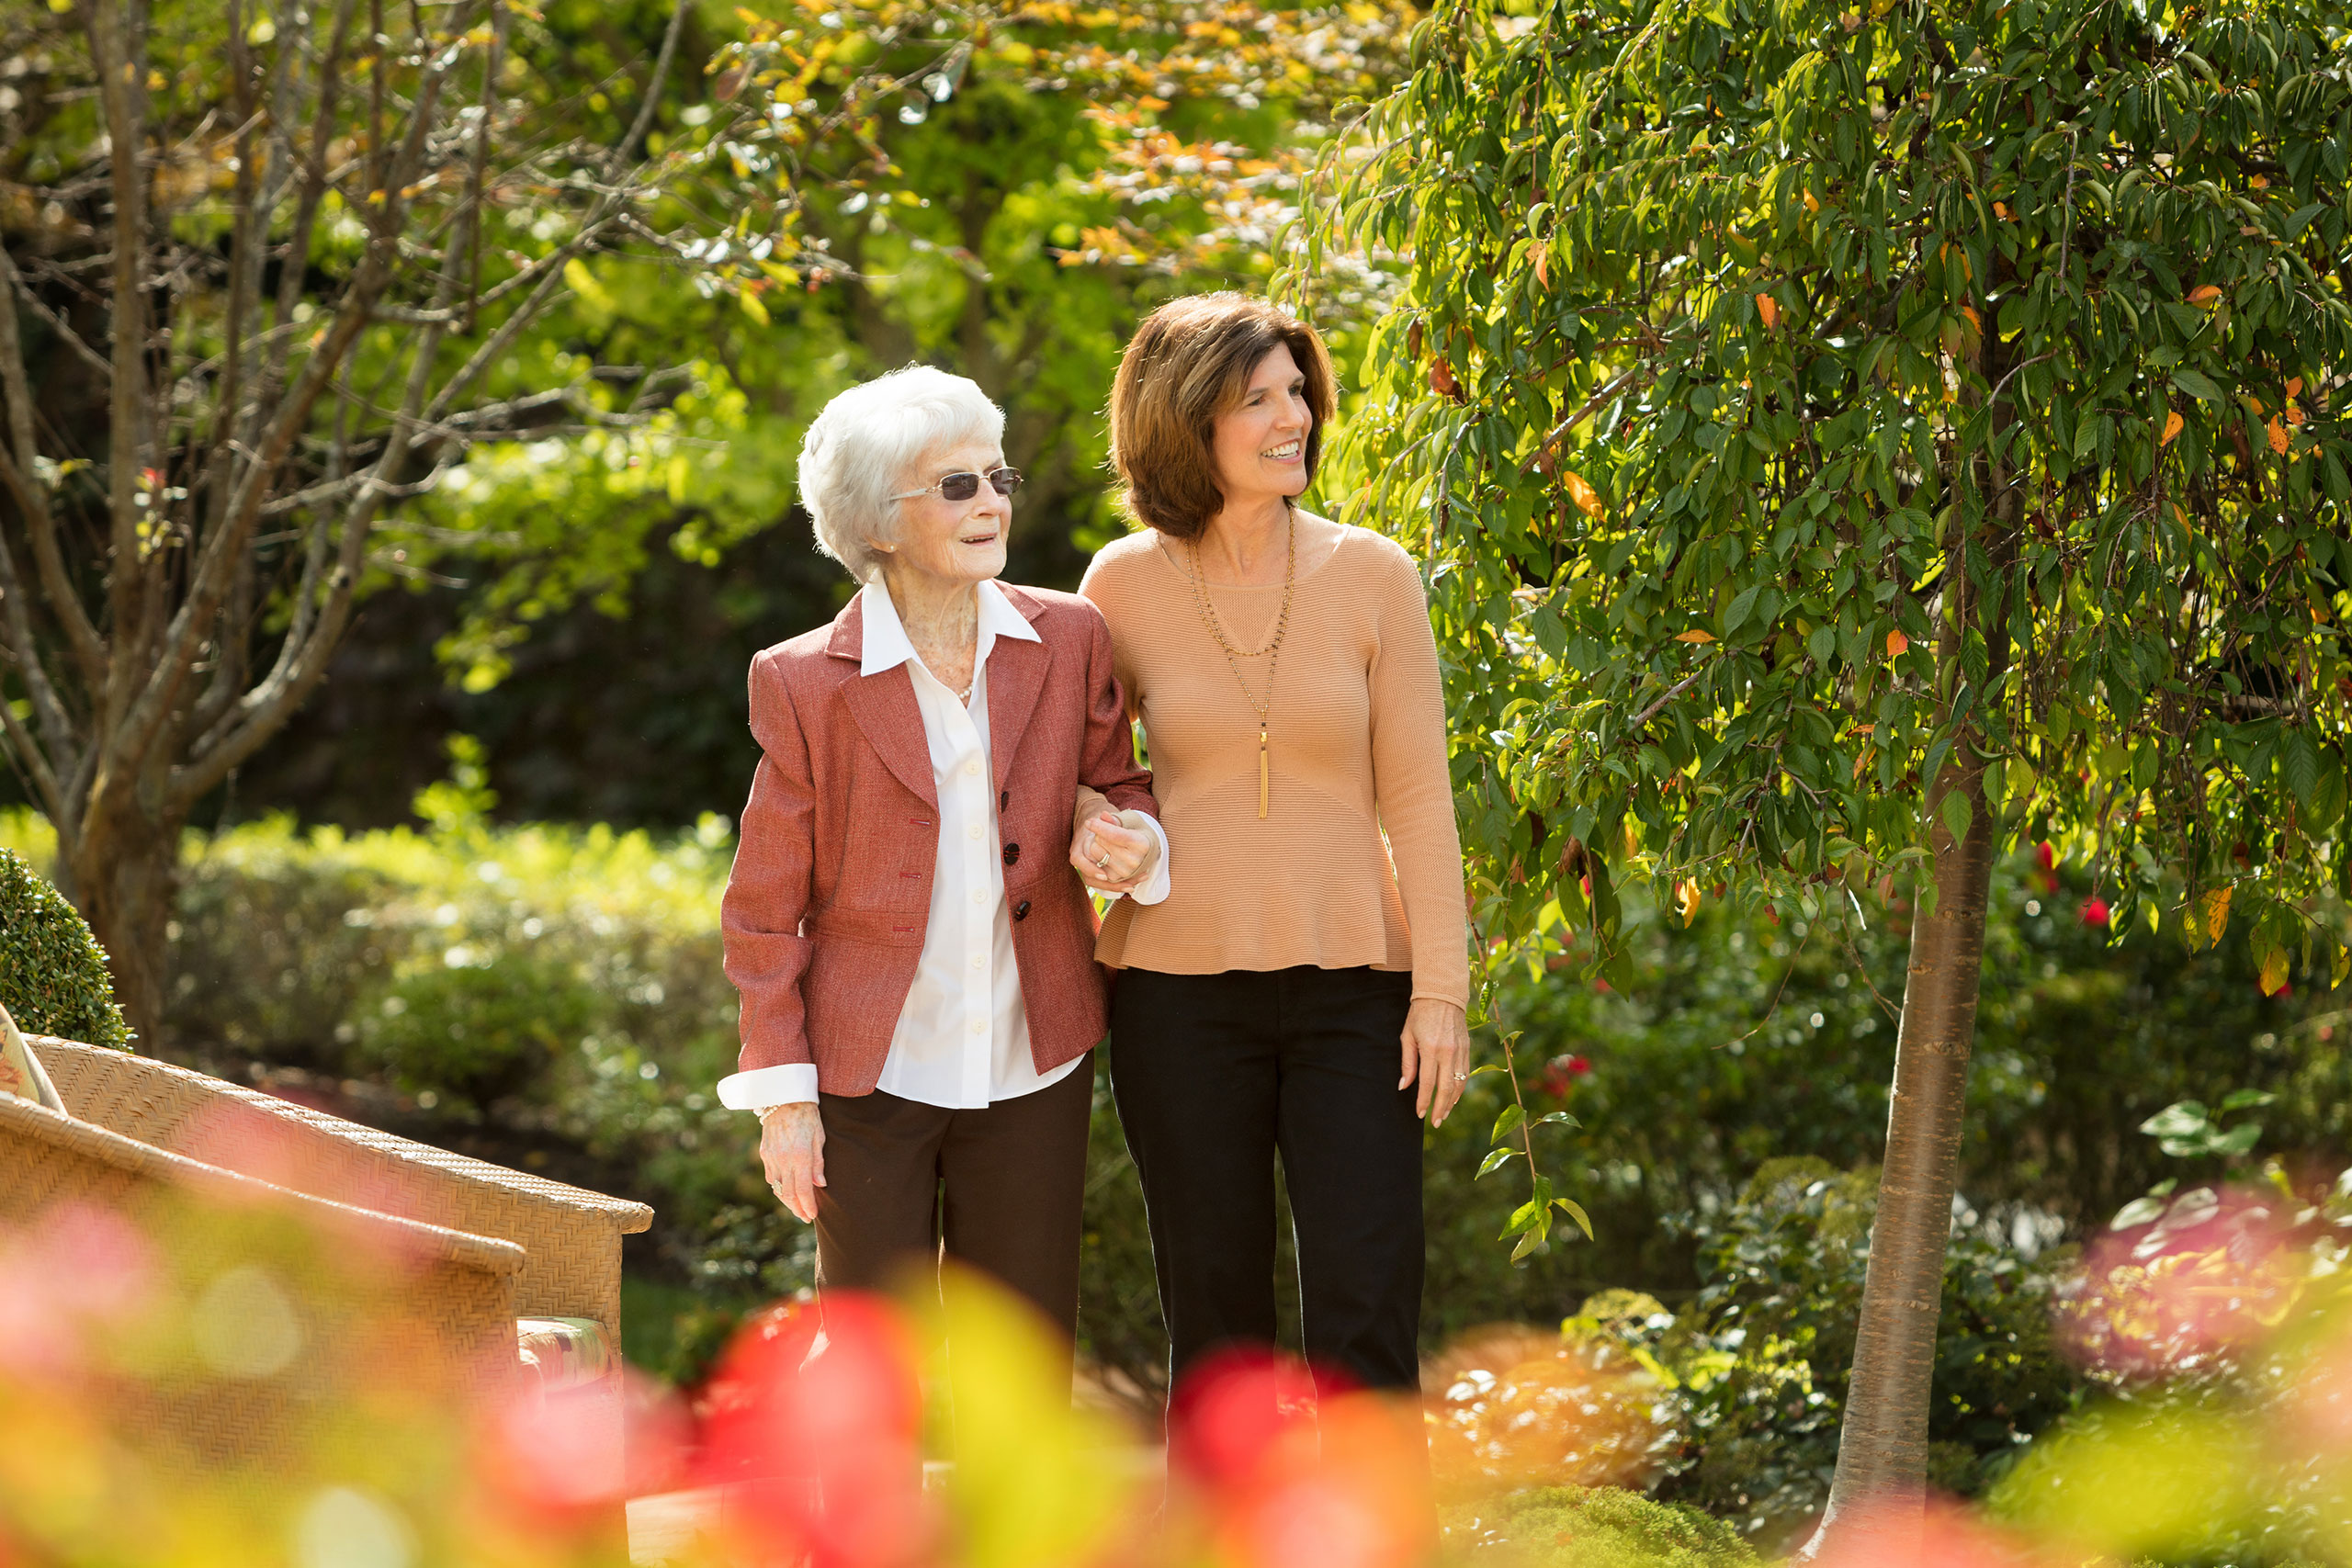 Daughter and resident walking through outdoor gardens.